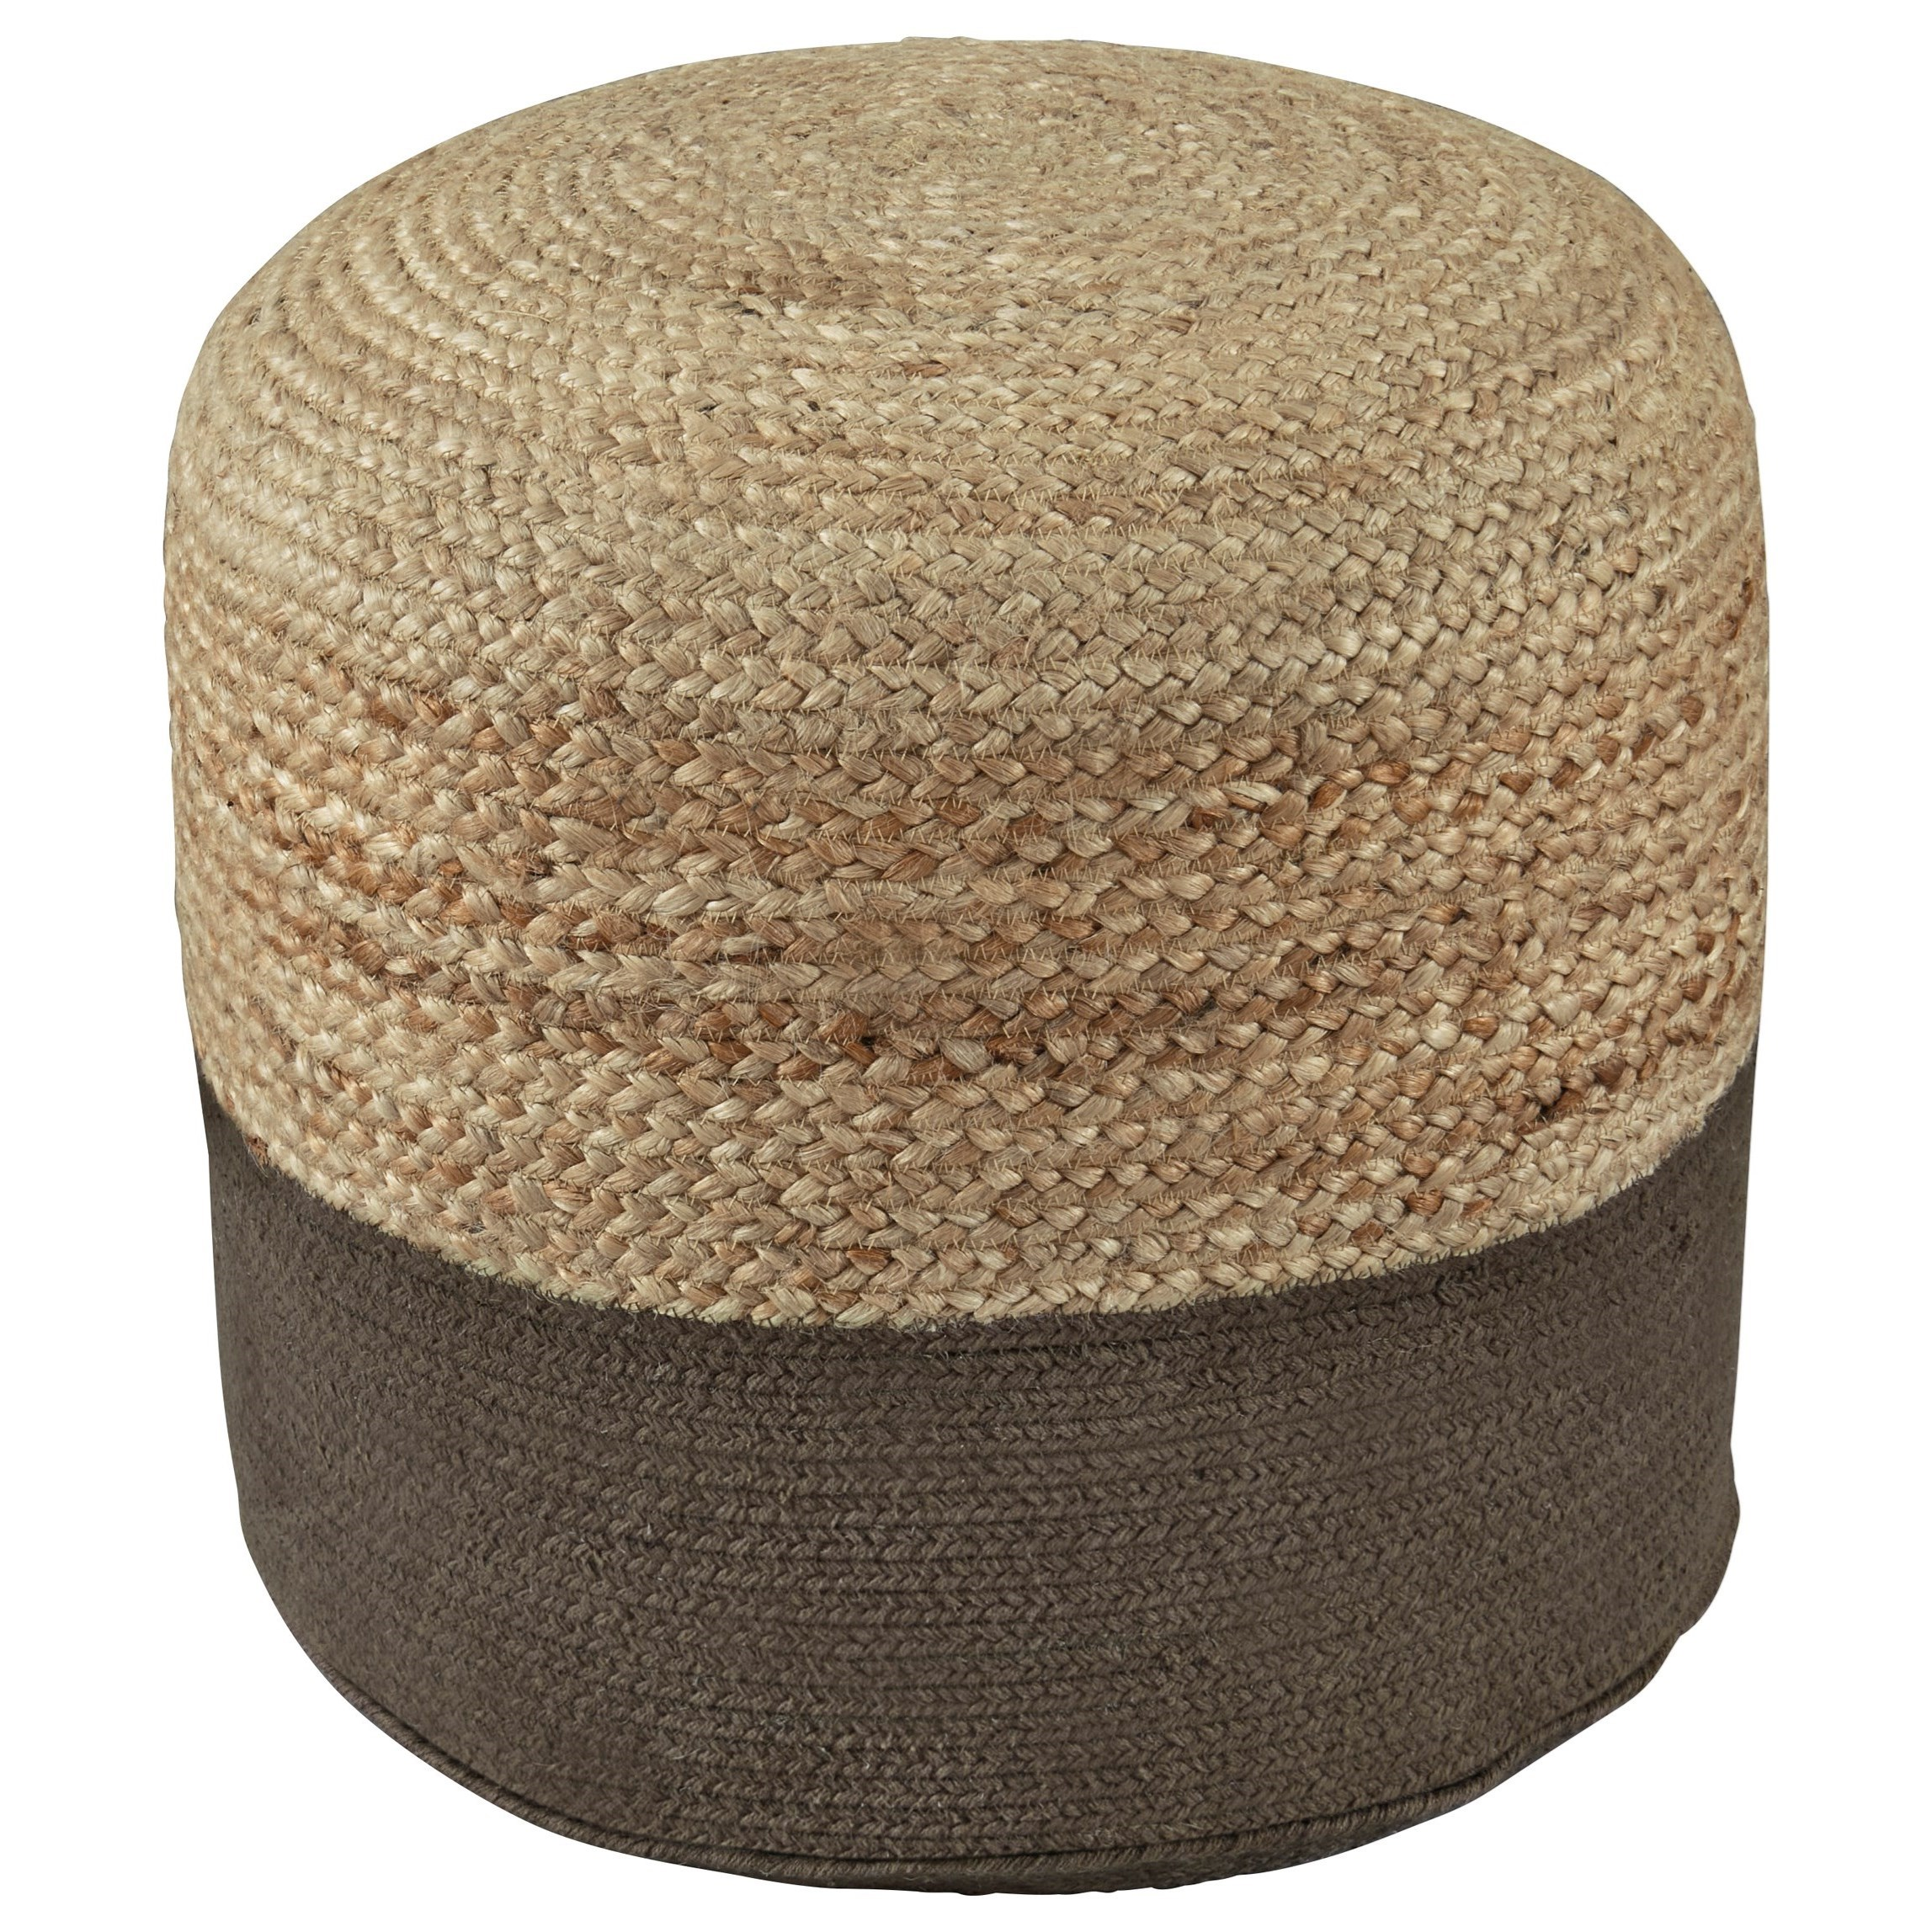 Poufs Sweed Valley Natural/Charcoal Pouf by Signature Design by Ashley at Furniture Barn